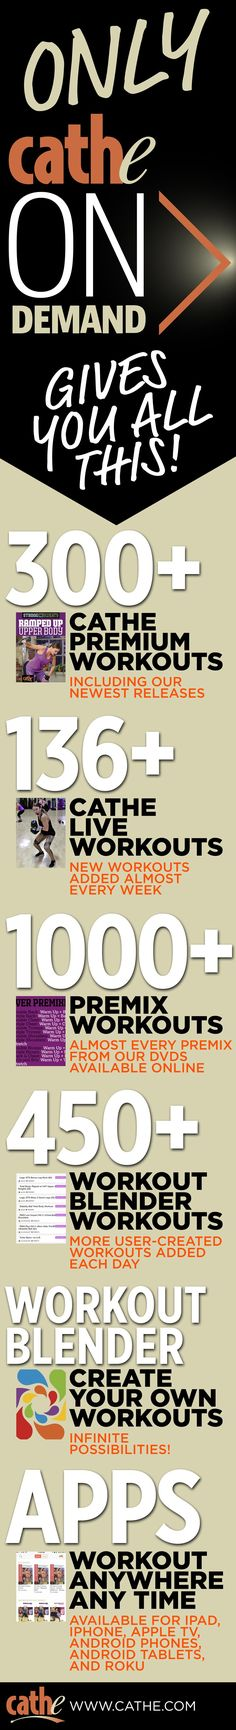 300 workout Any Time. Any Place. Cathe Live With Cathe Live you get to see and experience Cathe in the same way our gym members do unrehearsed, unscripted and little to no editing. Now yo Workout Challange, Hiit Workout Plan, Card Workout, Workout Guide, Stephen Amell Workout, Spartan 300 Workout, Gladiator Workout, Pop Workouts, Muscles In Your Body